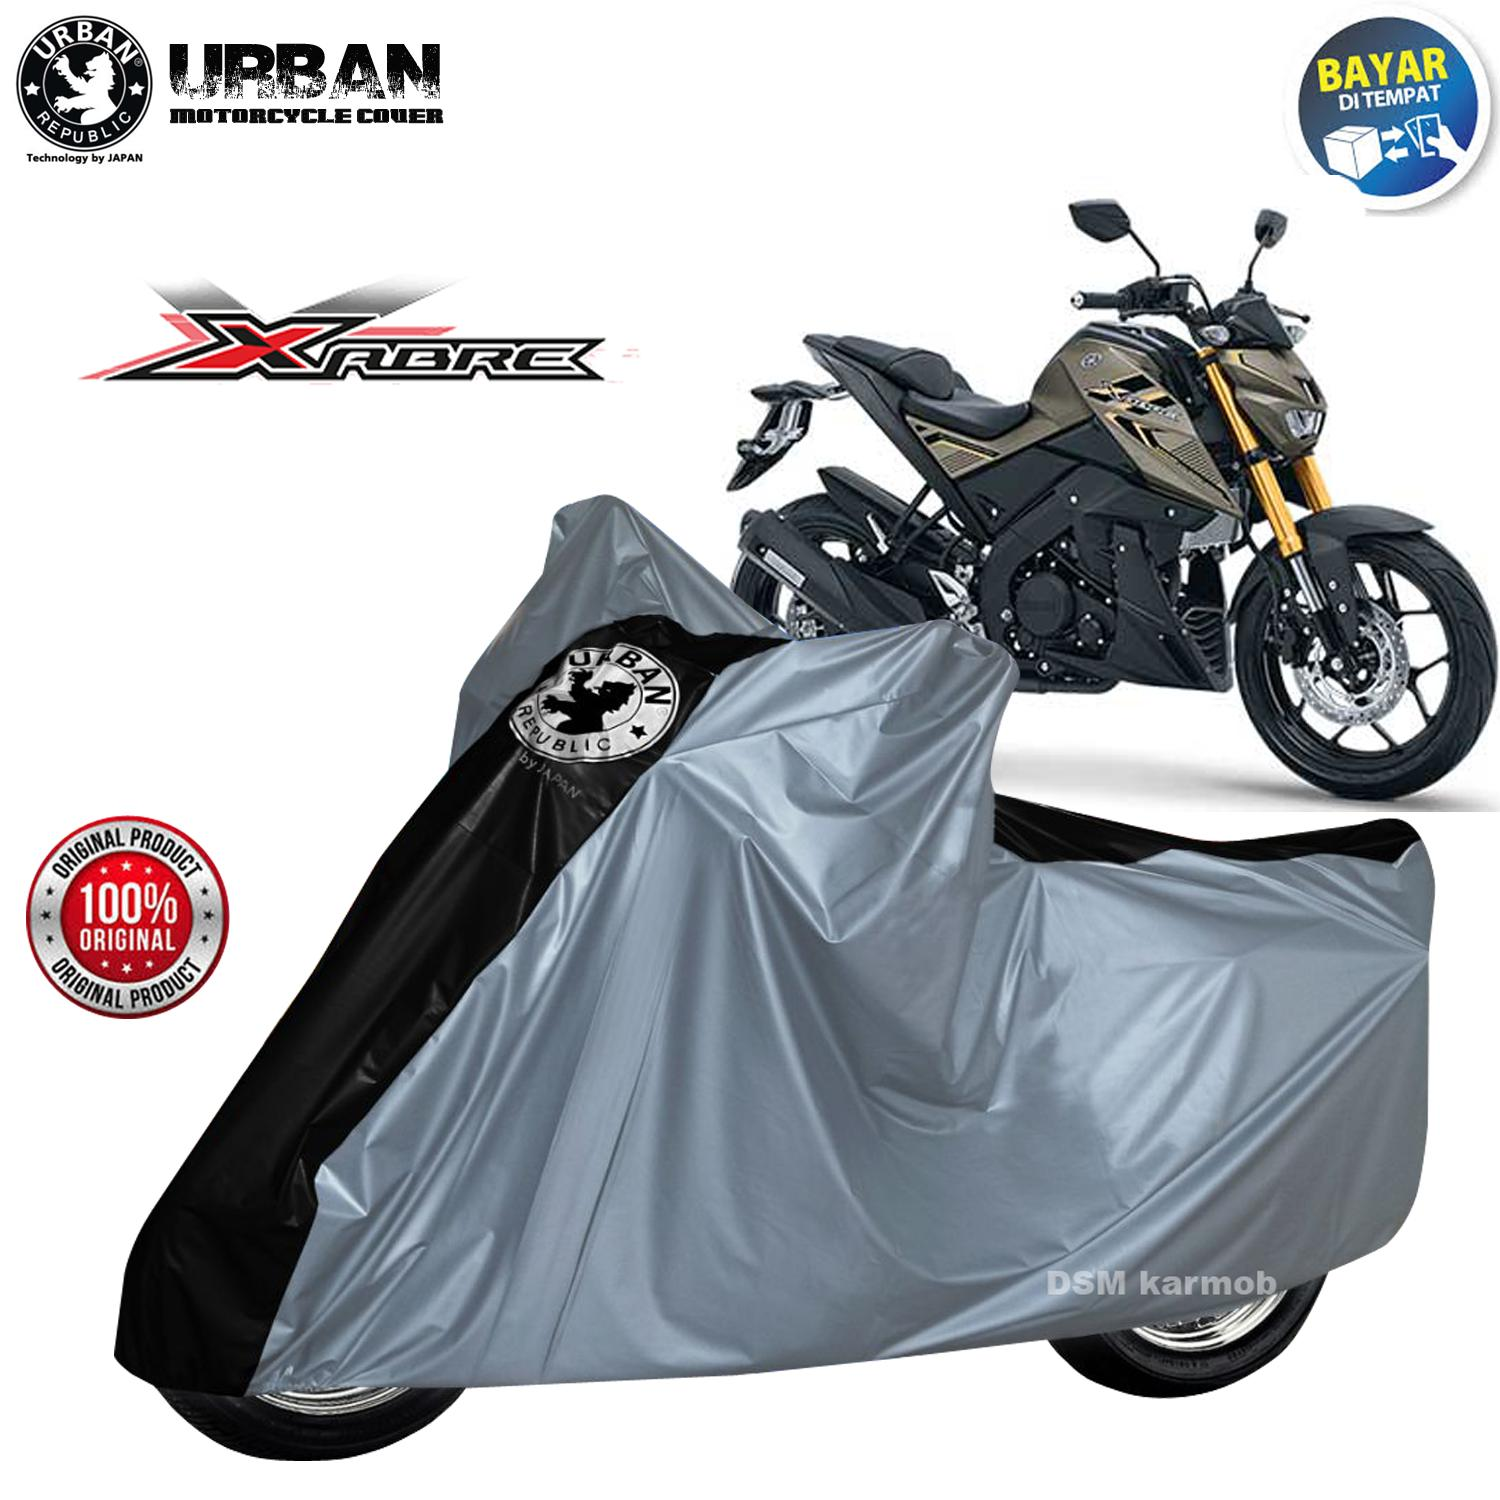 Urban / Cover Motor Yamaha Xabre / Body Cover Yamaha Xabre / Tutup Motor Xabre / Tutup Body Motor Xabre / Sarung Motor Xabre / Selimut Motor Xabre / Asesoris Motor Xabre / DSM / Karmob - Urban Cover Motor Jumbo